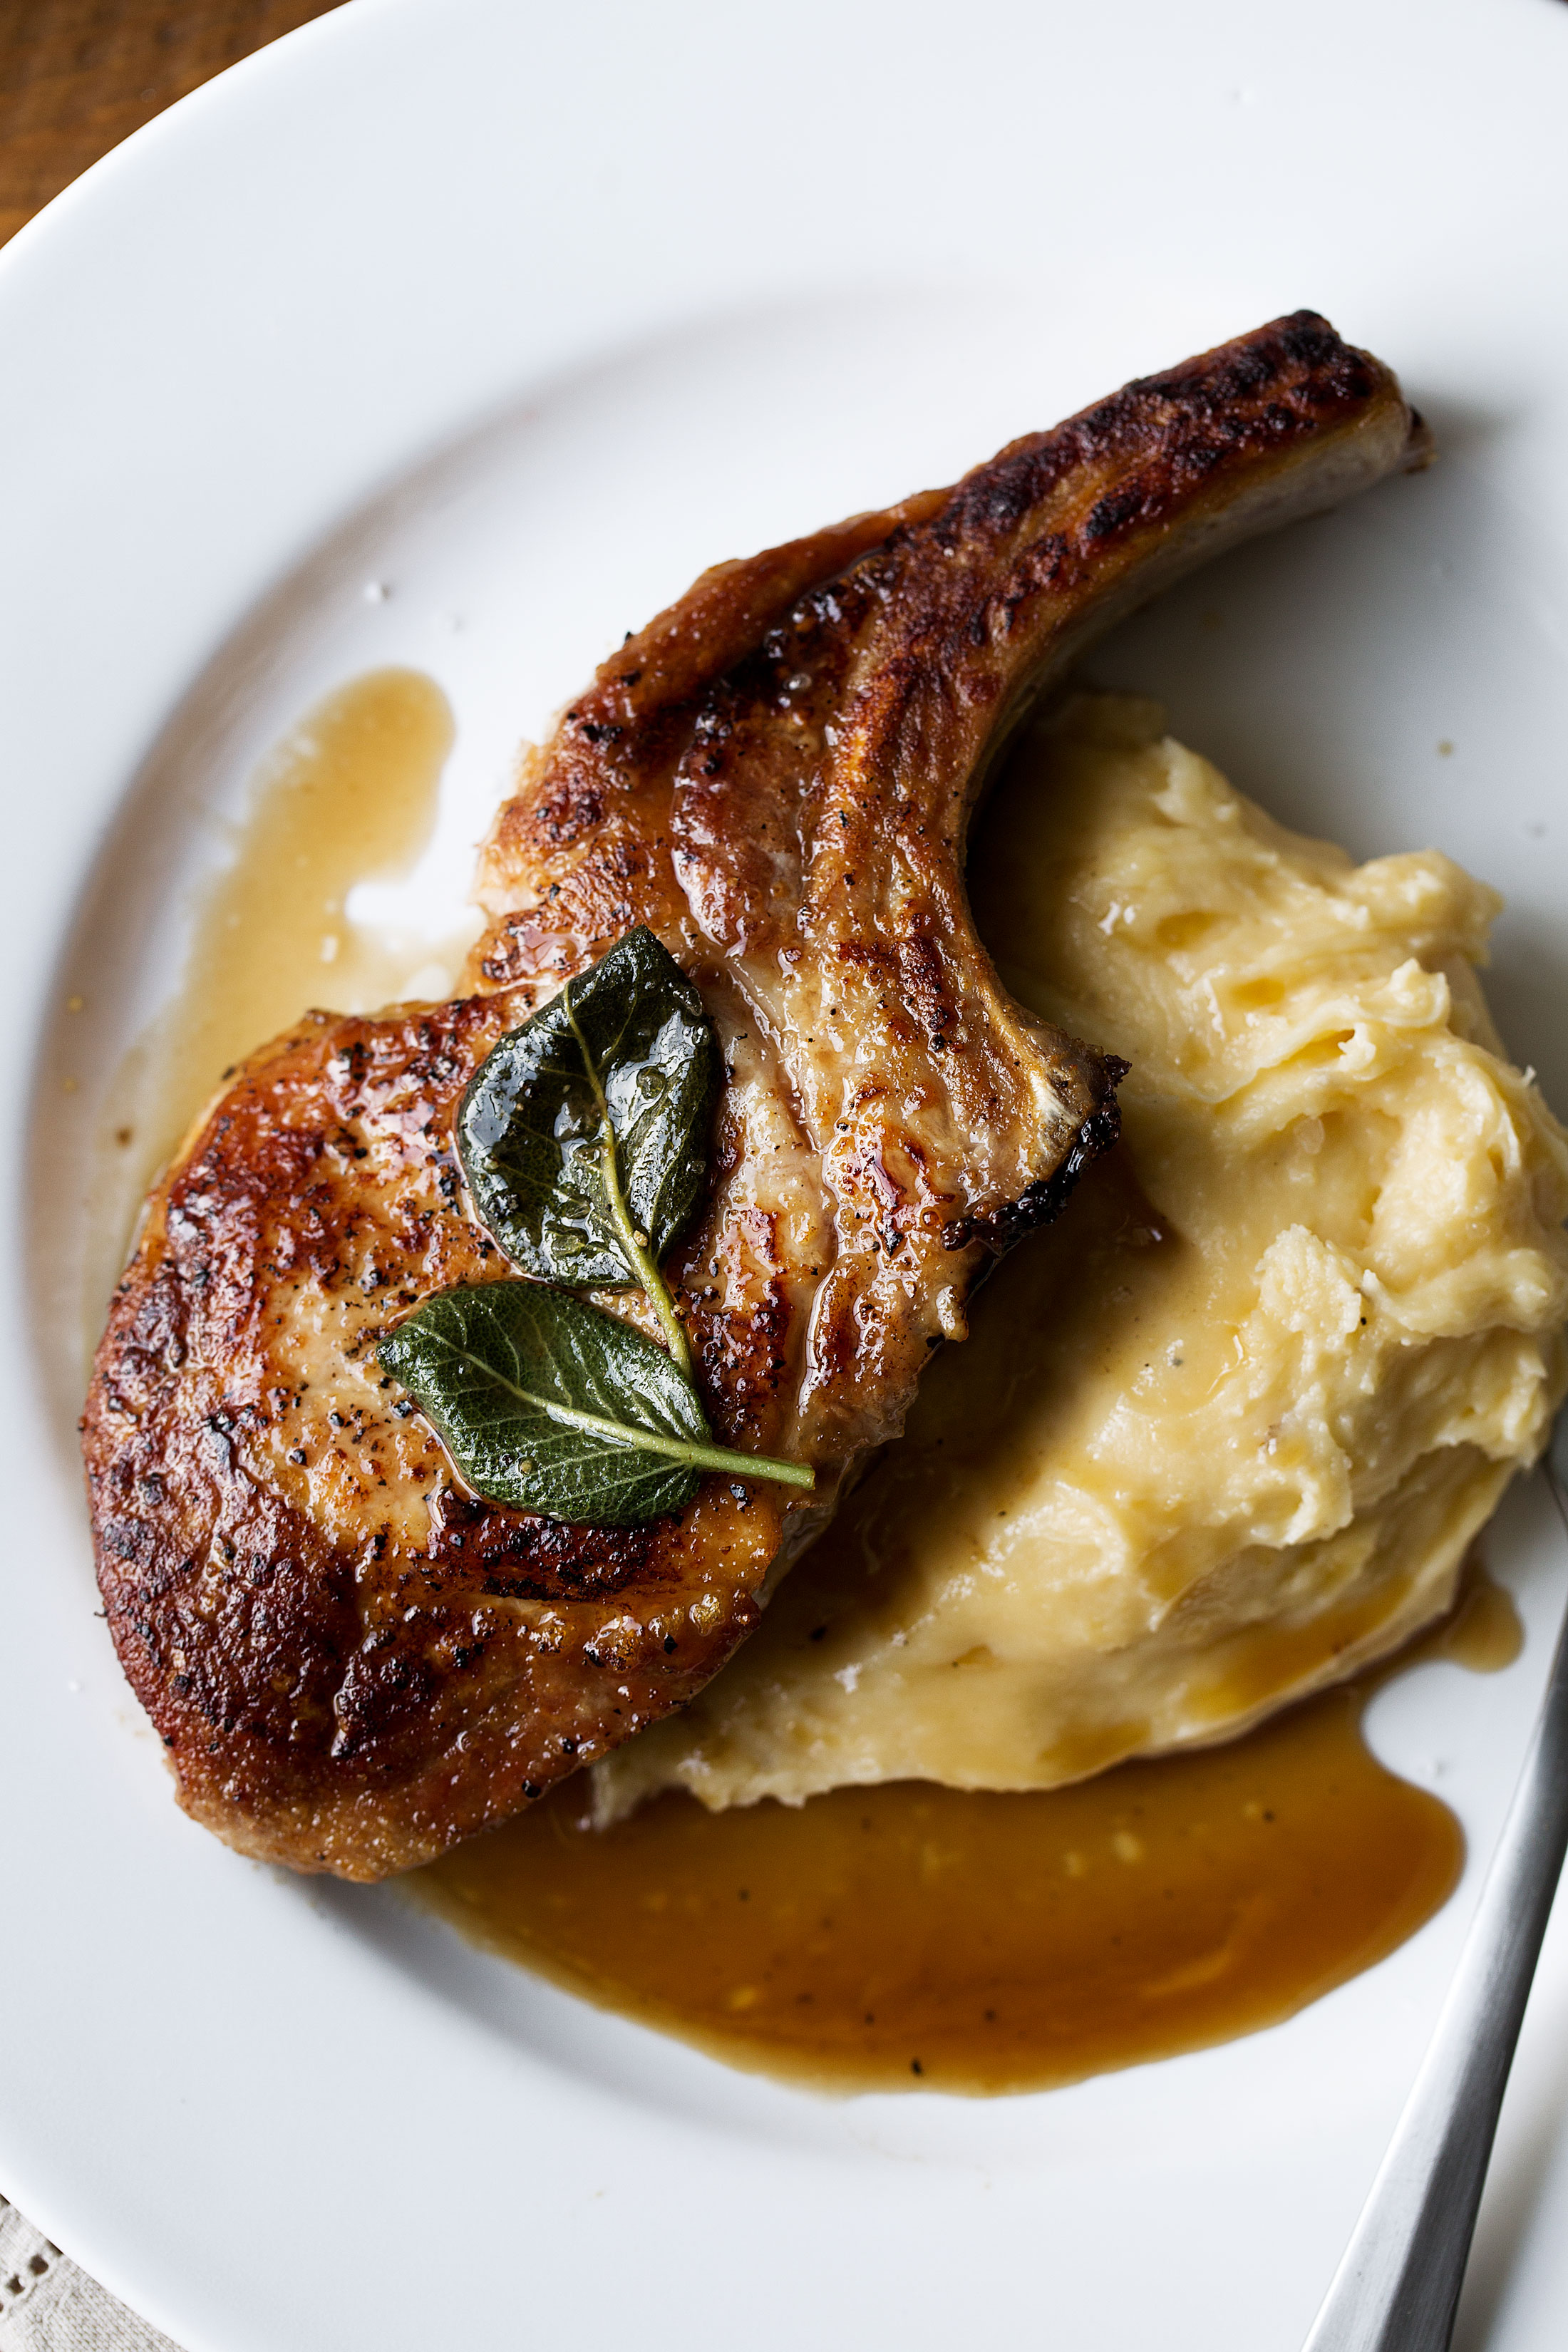 apple cider and sage glazed pork chops with whipped cheddar potatoes